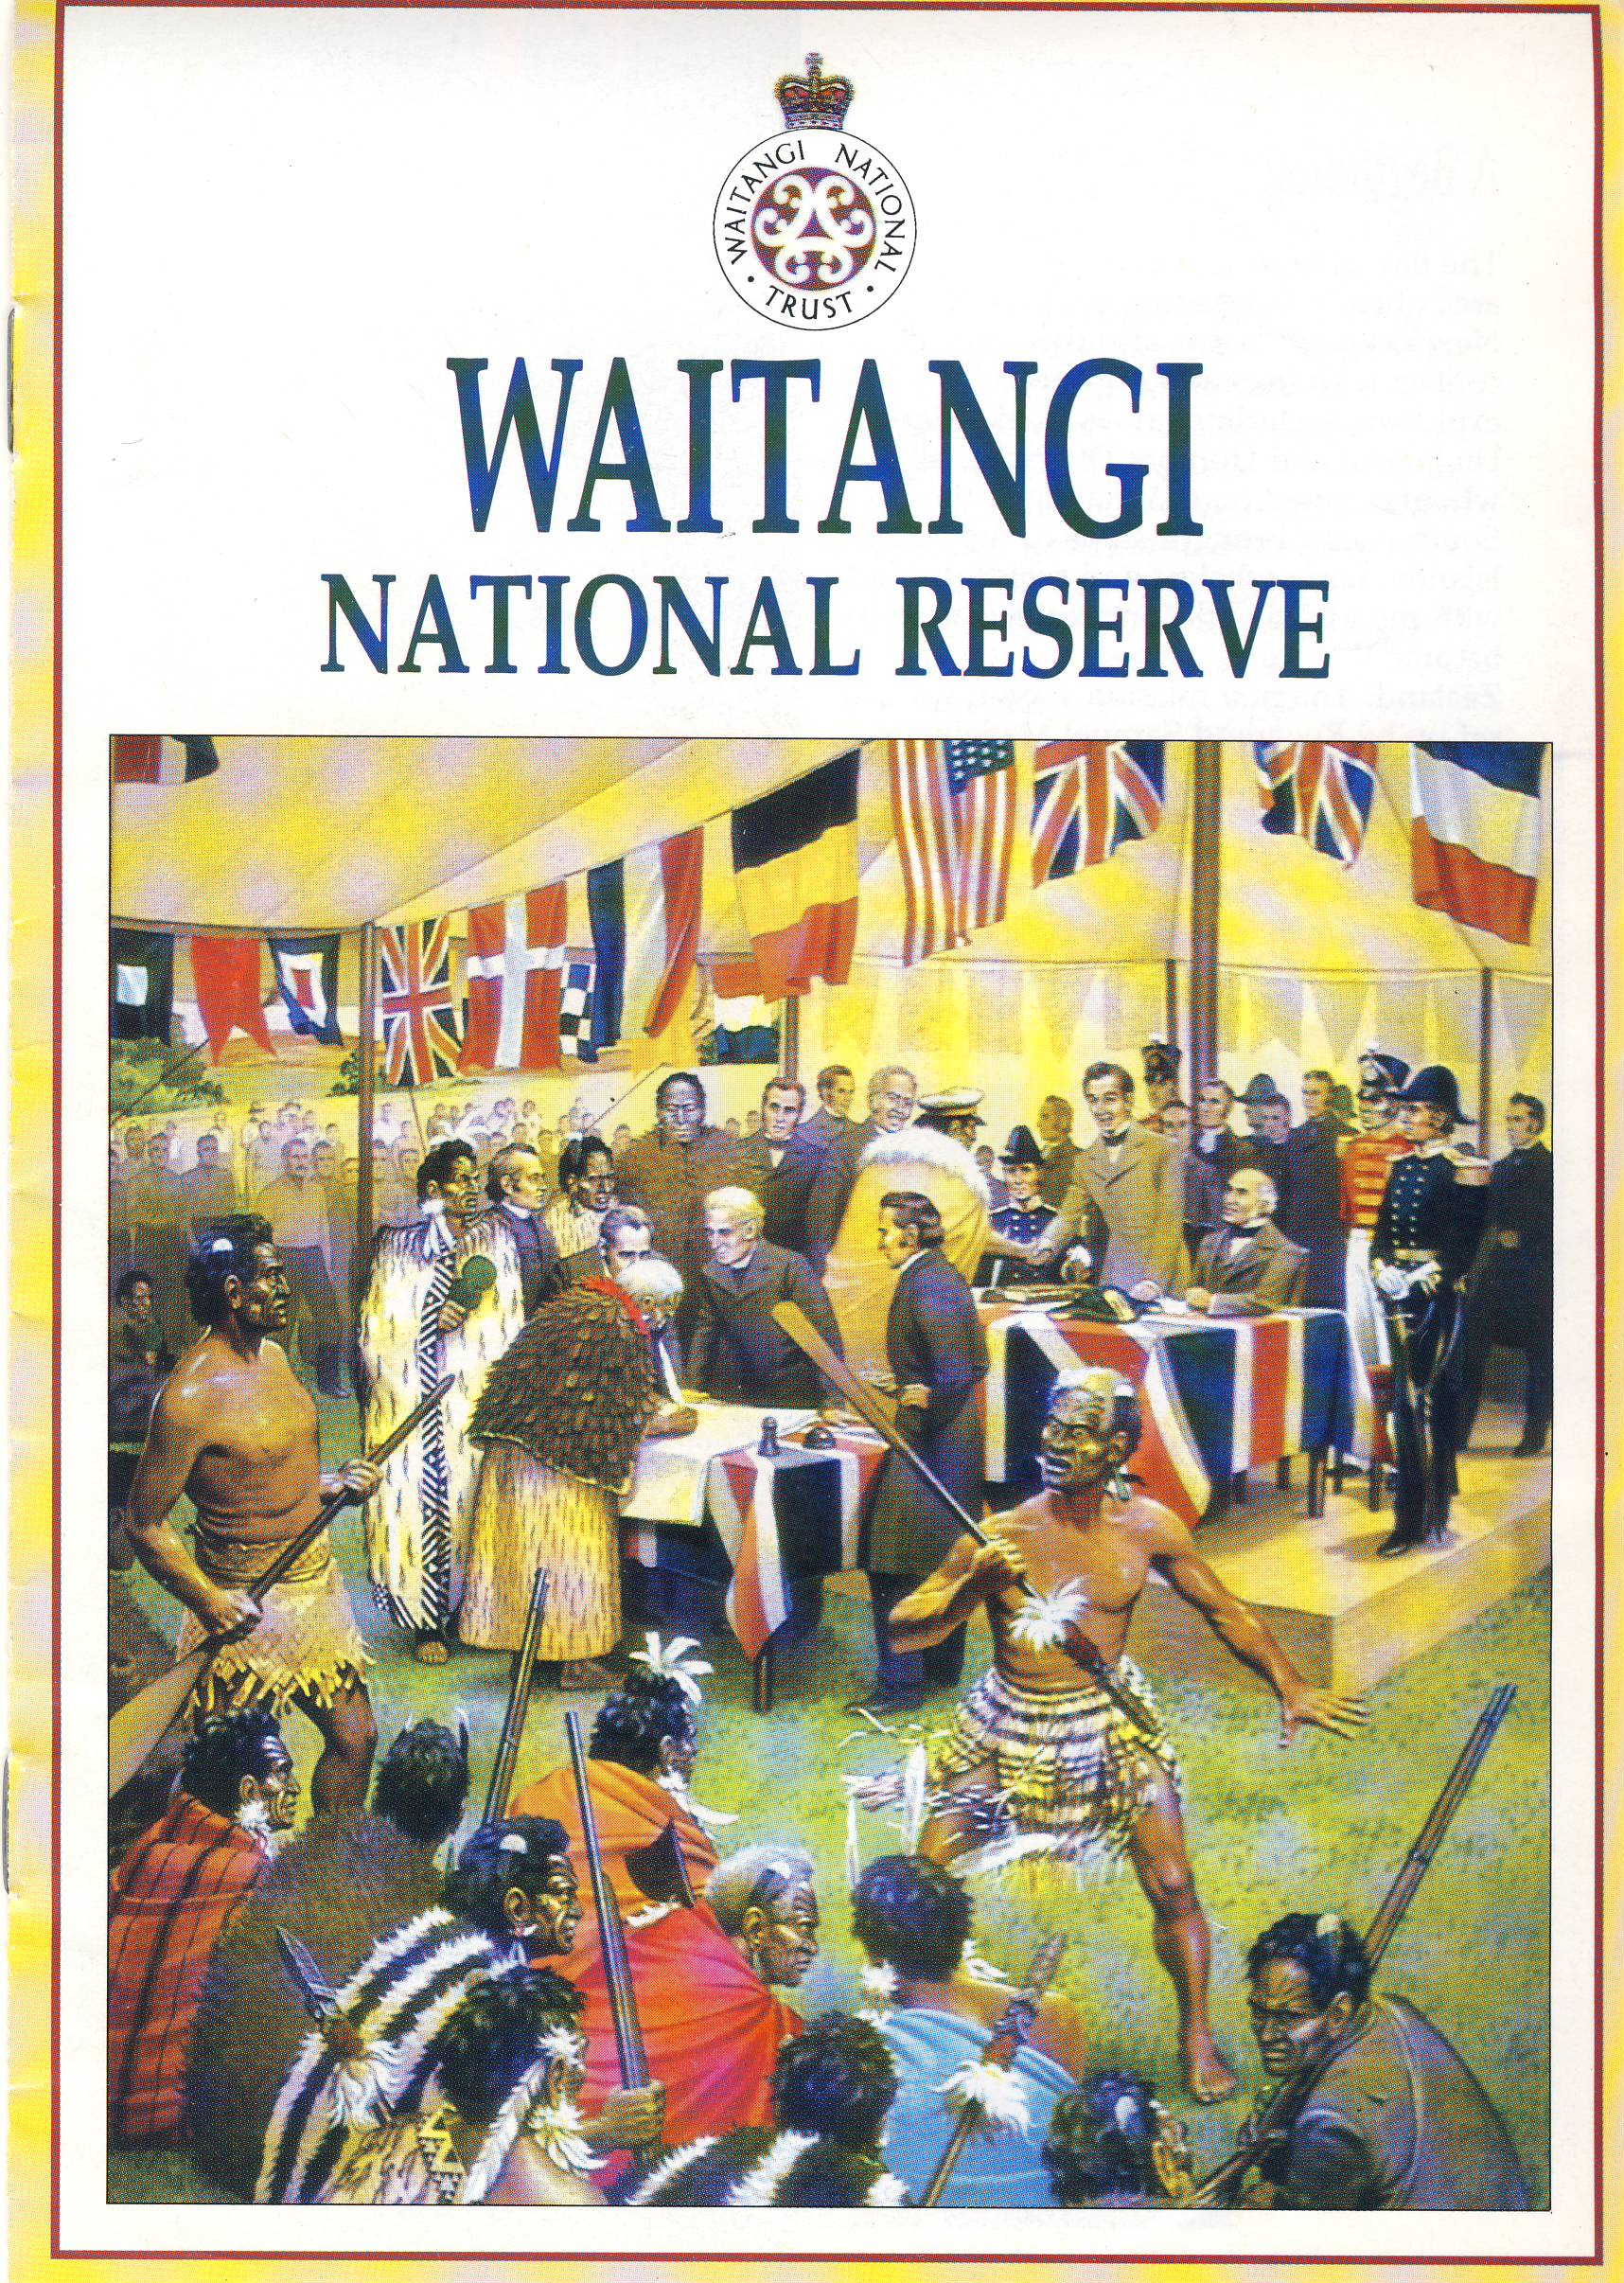 WAITANGI NATIONAL RESERVE vintage 8 page booklet refS5 a pre-owned vintage item in good condition. Measures approx 21cm x 15cm.